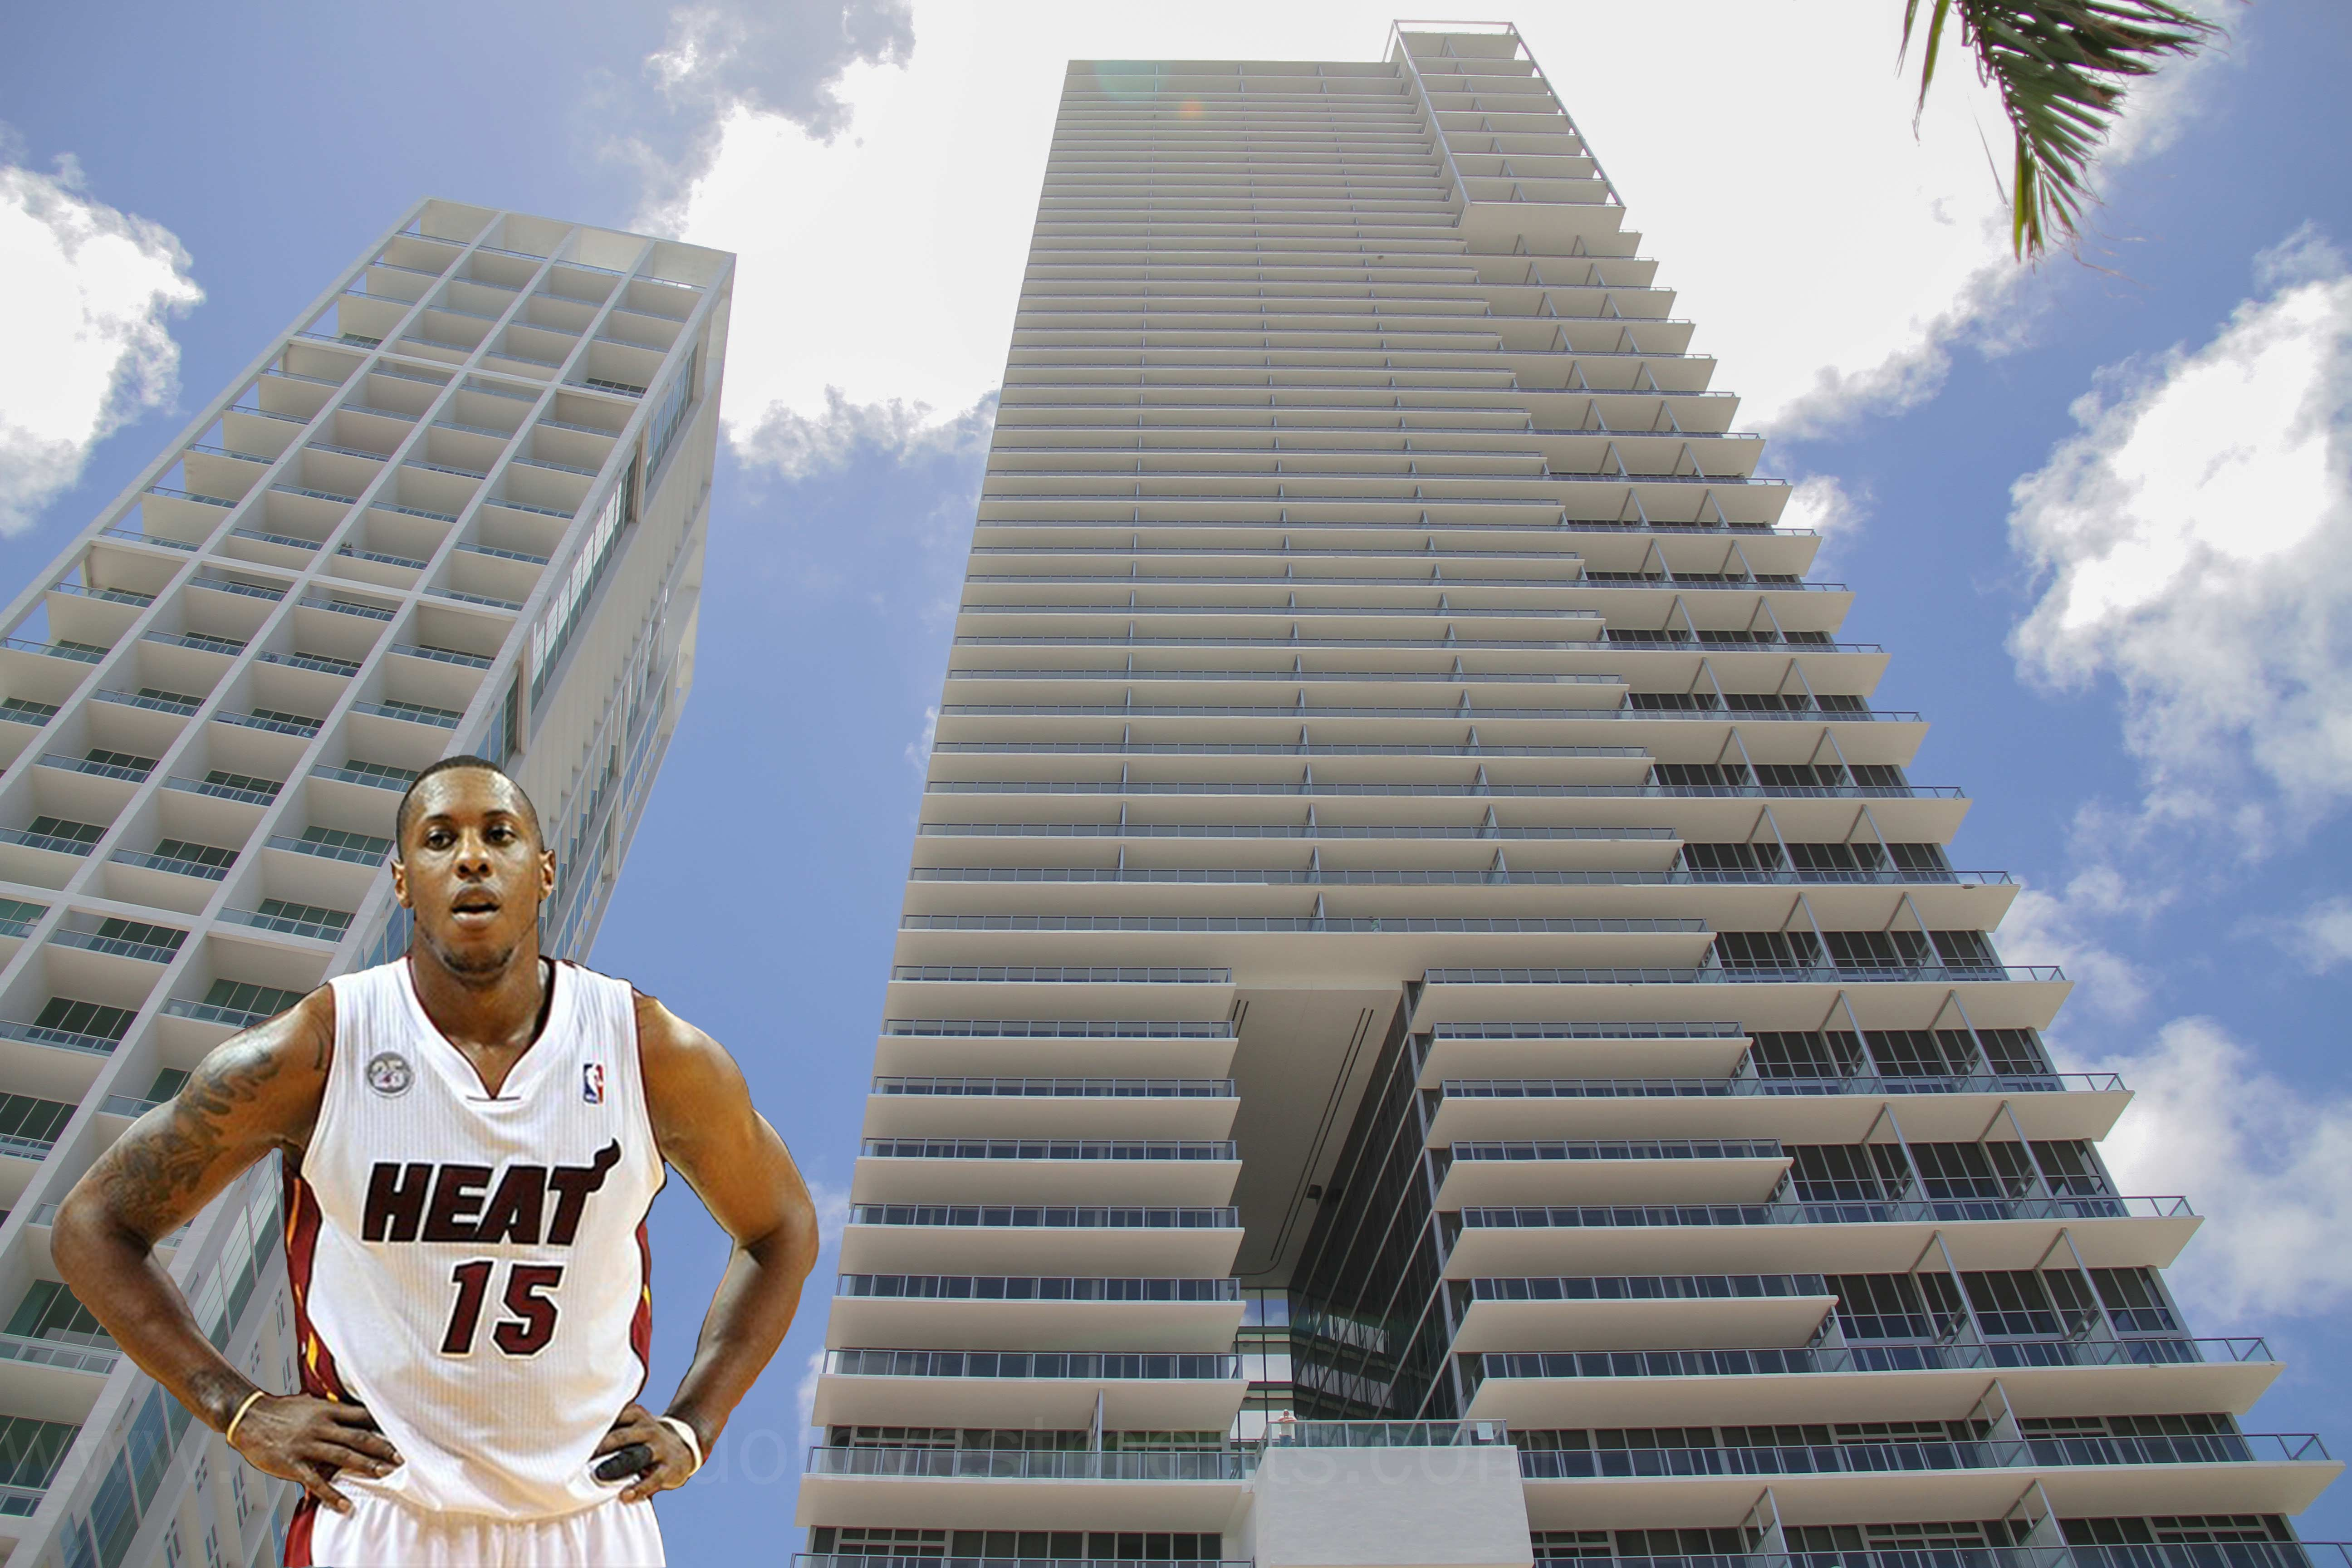 Mario Chalmers Lists 5 Bedroom condo at Marquis Residences for $4M